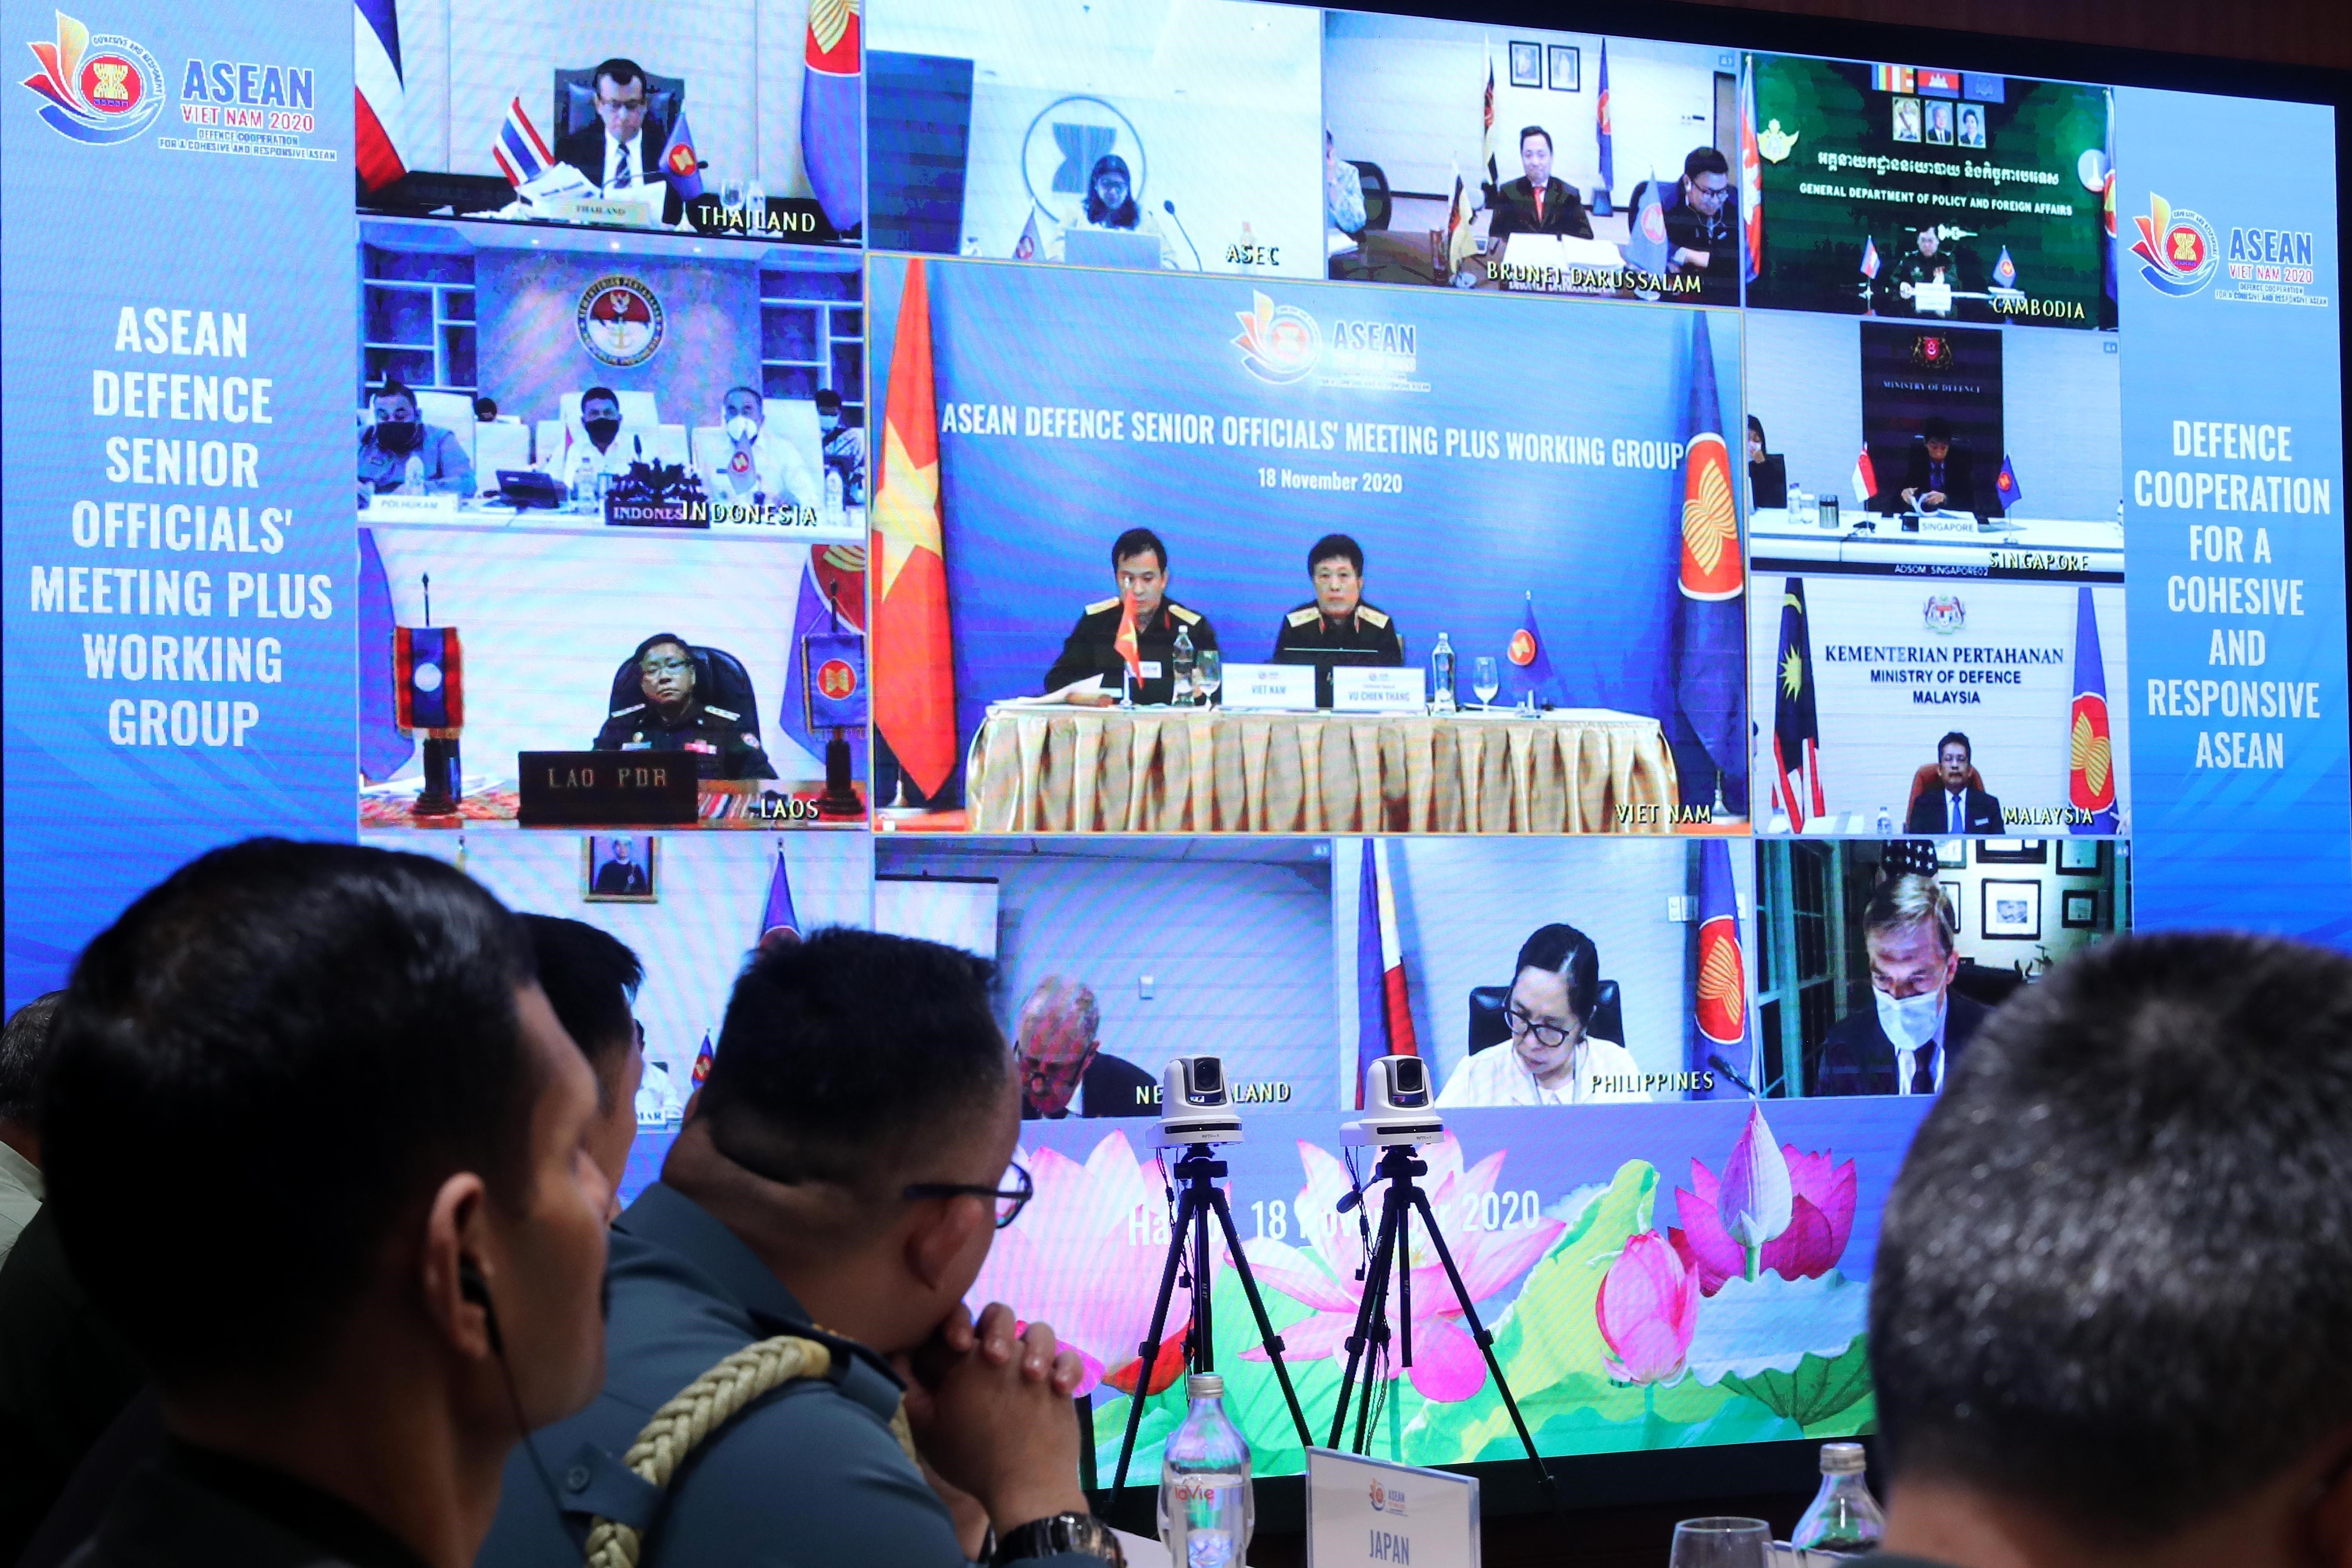 ASEAN 2020: ASEAN Defence Senior Officials' Meeting Plus Working Group hinh anh 5